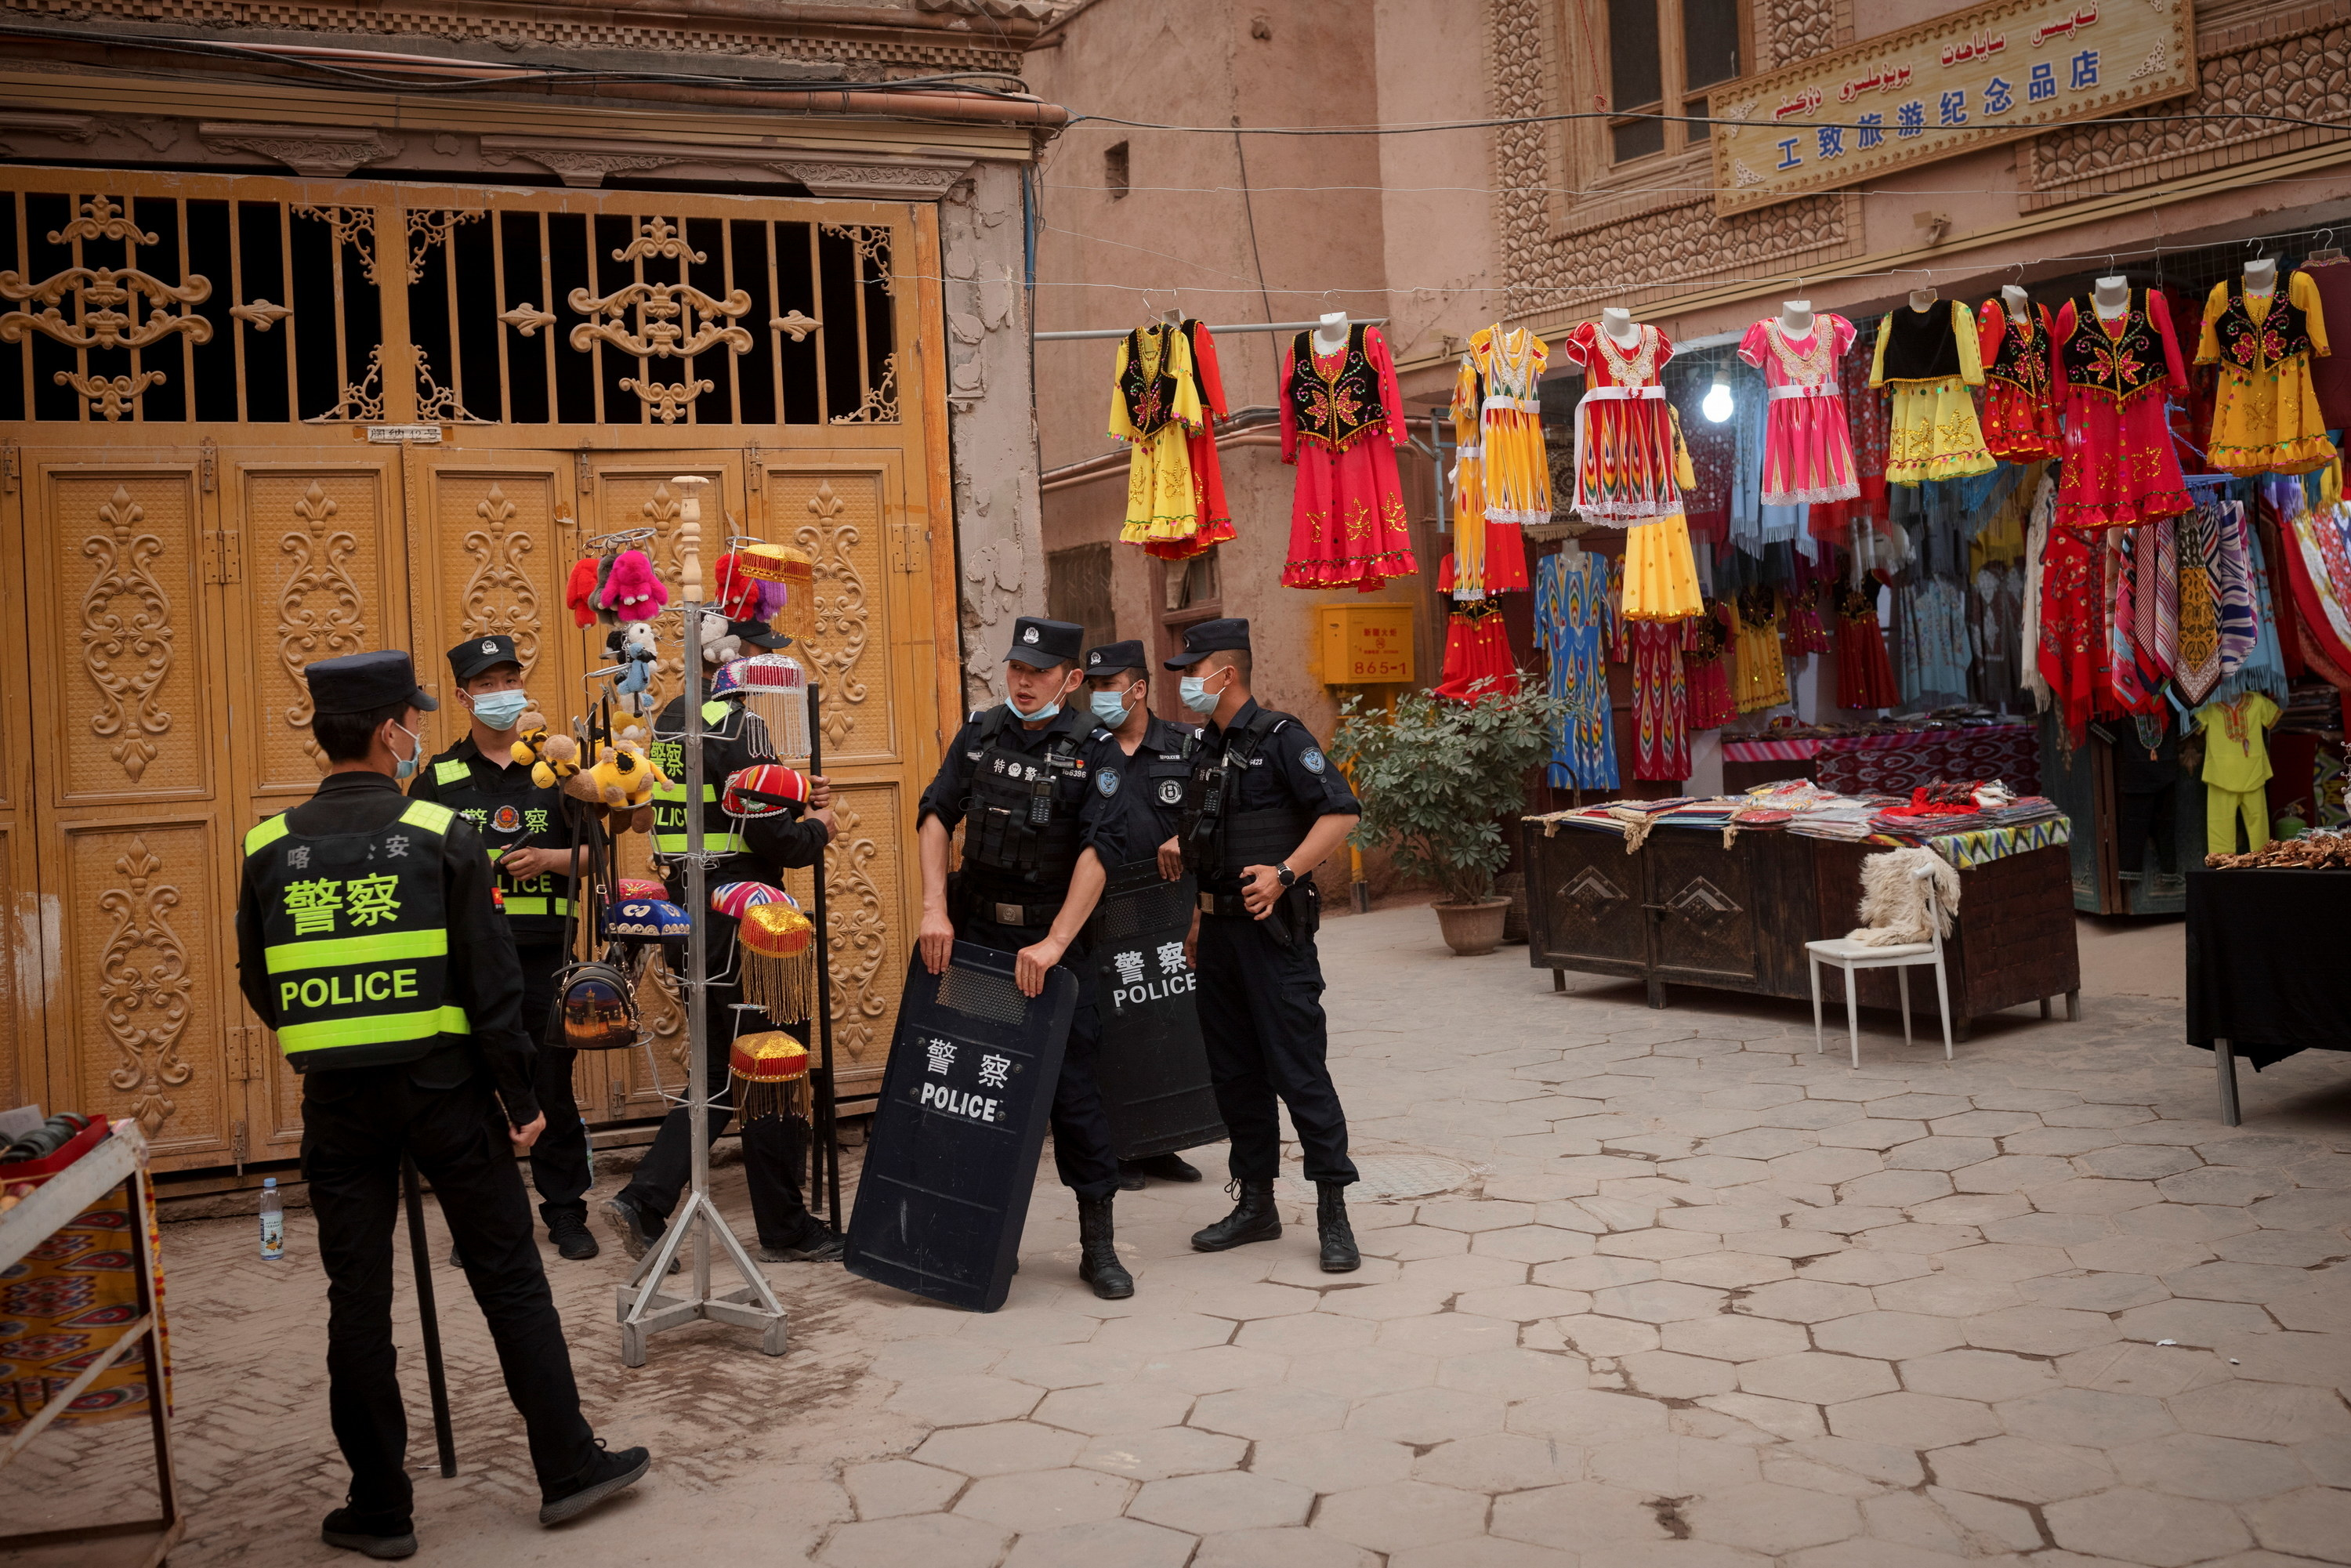 A group of Chinese polica officers outside a tourist stand selling dresses and hates in Xinjiang